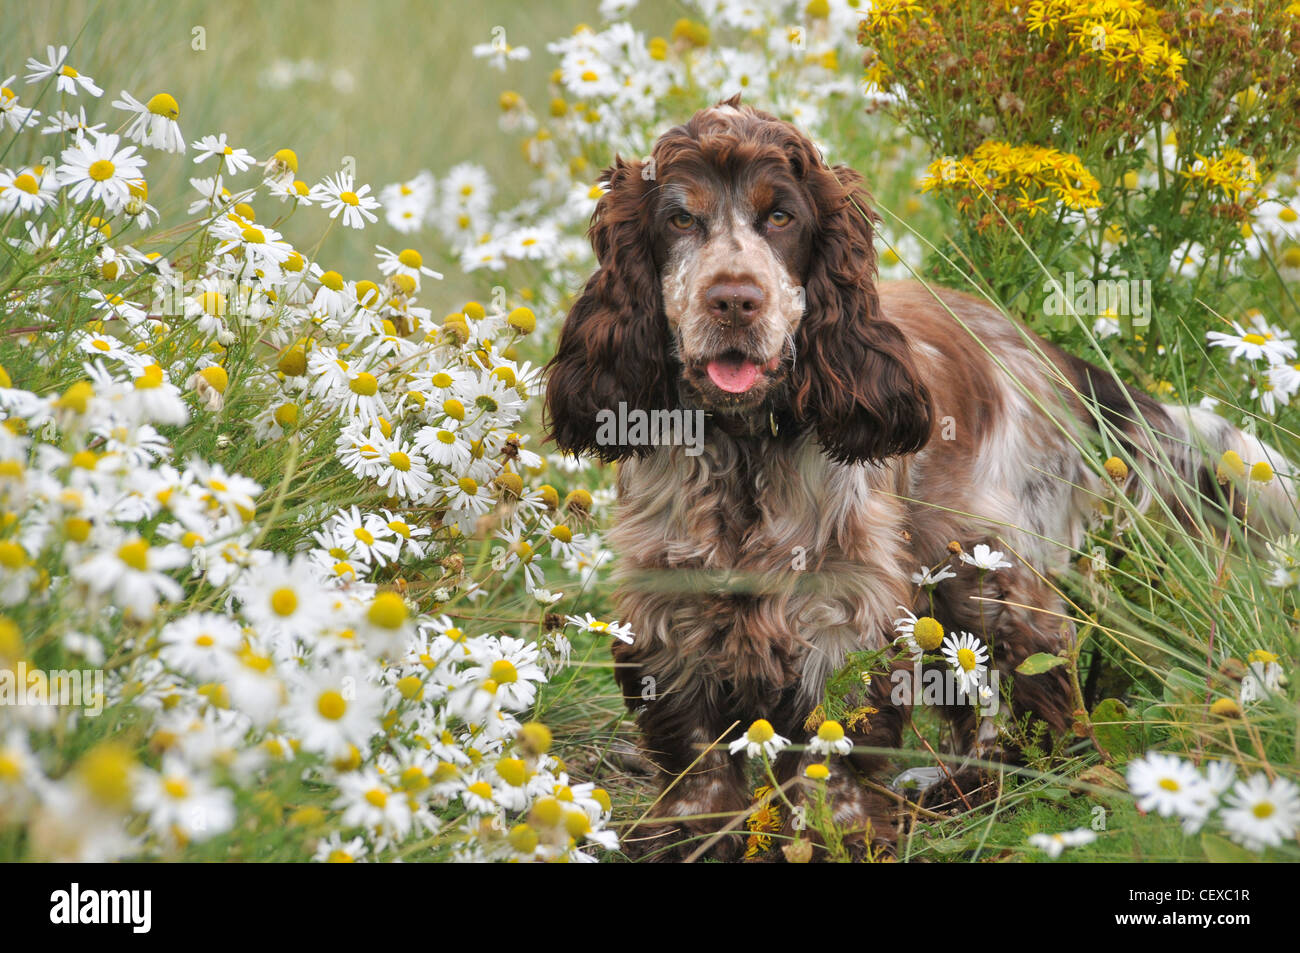 A cute brown and white cocker spaniel stands facing the viewer, in a field of  white and yellow flowers. - Stock Image